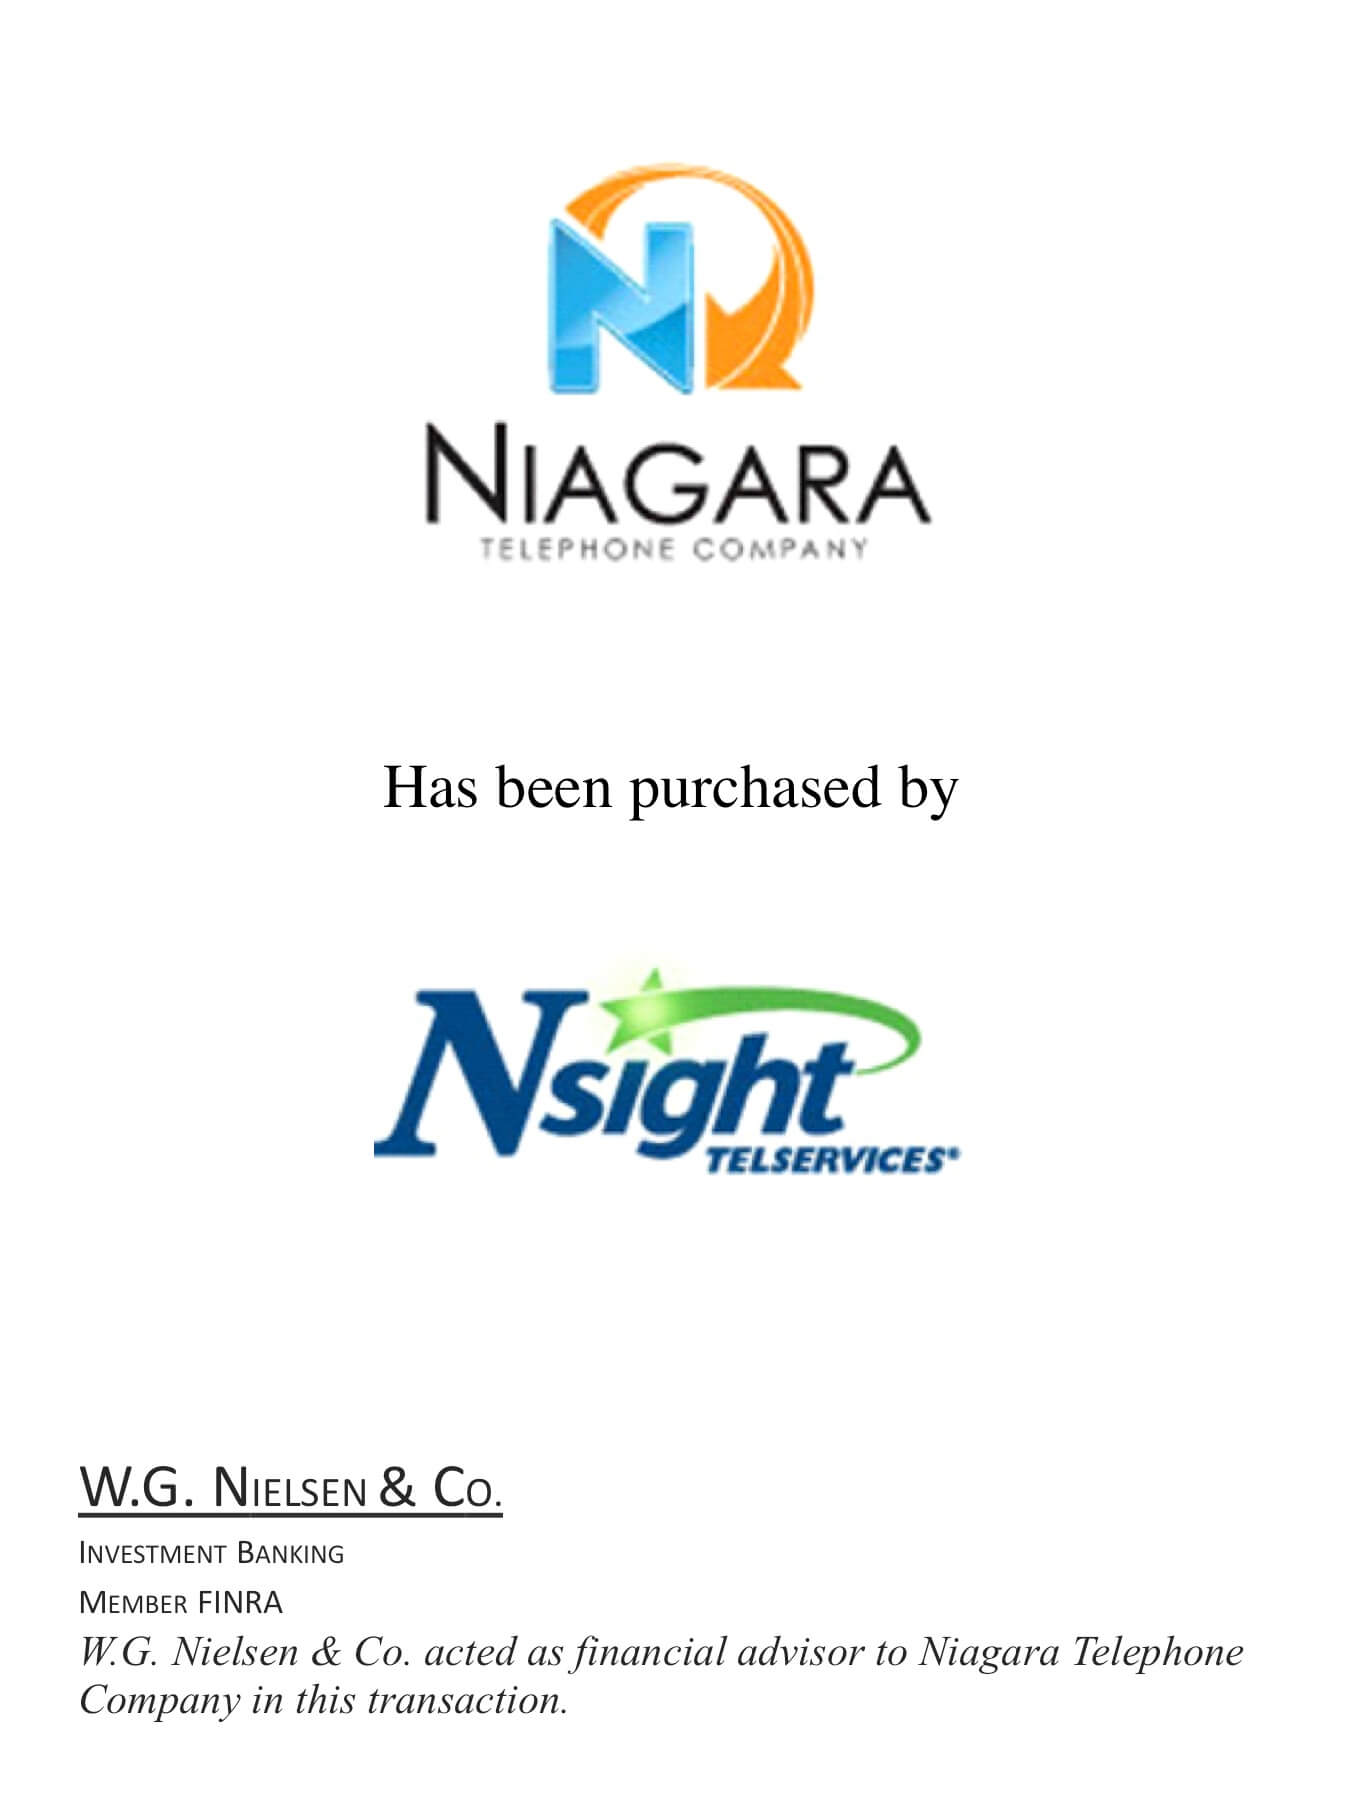 niagra telephone investment banking transaction